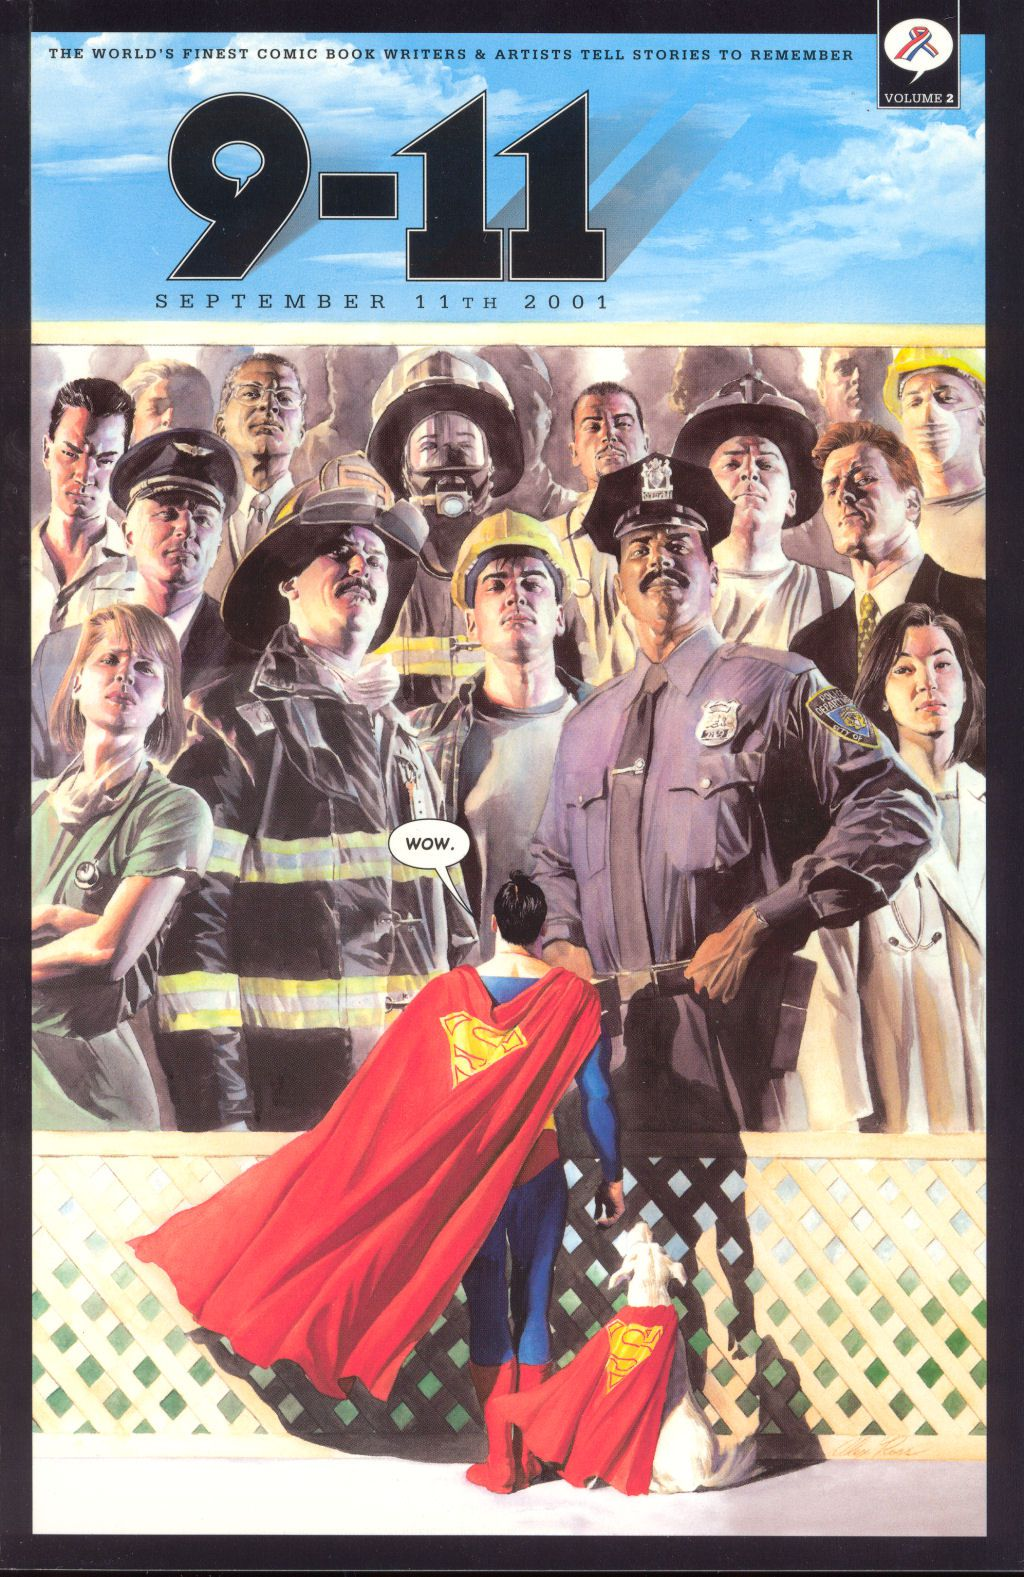 """Superman looks up at a billboard depicting first responders and healthcare workers, and says """"Wow,"""" on the cover of 9-11: The World's Finest Comic Book Writers & Artists, DC Comics (2001)."""